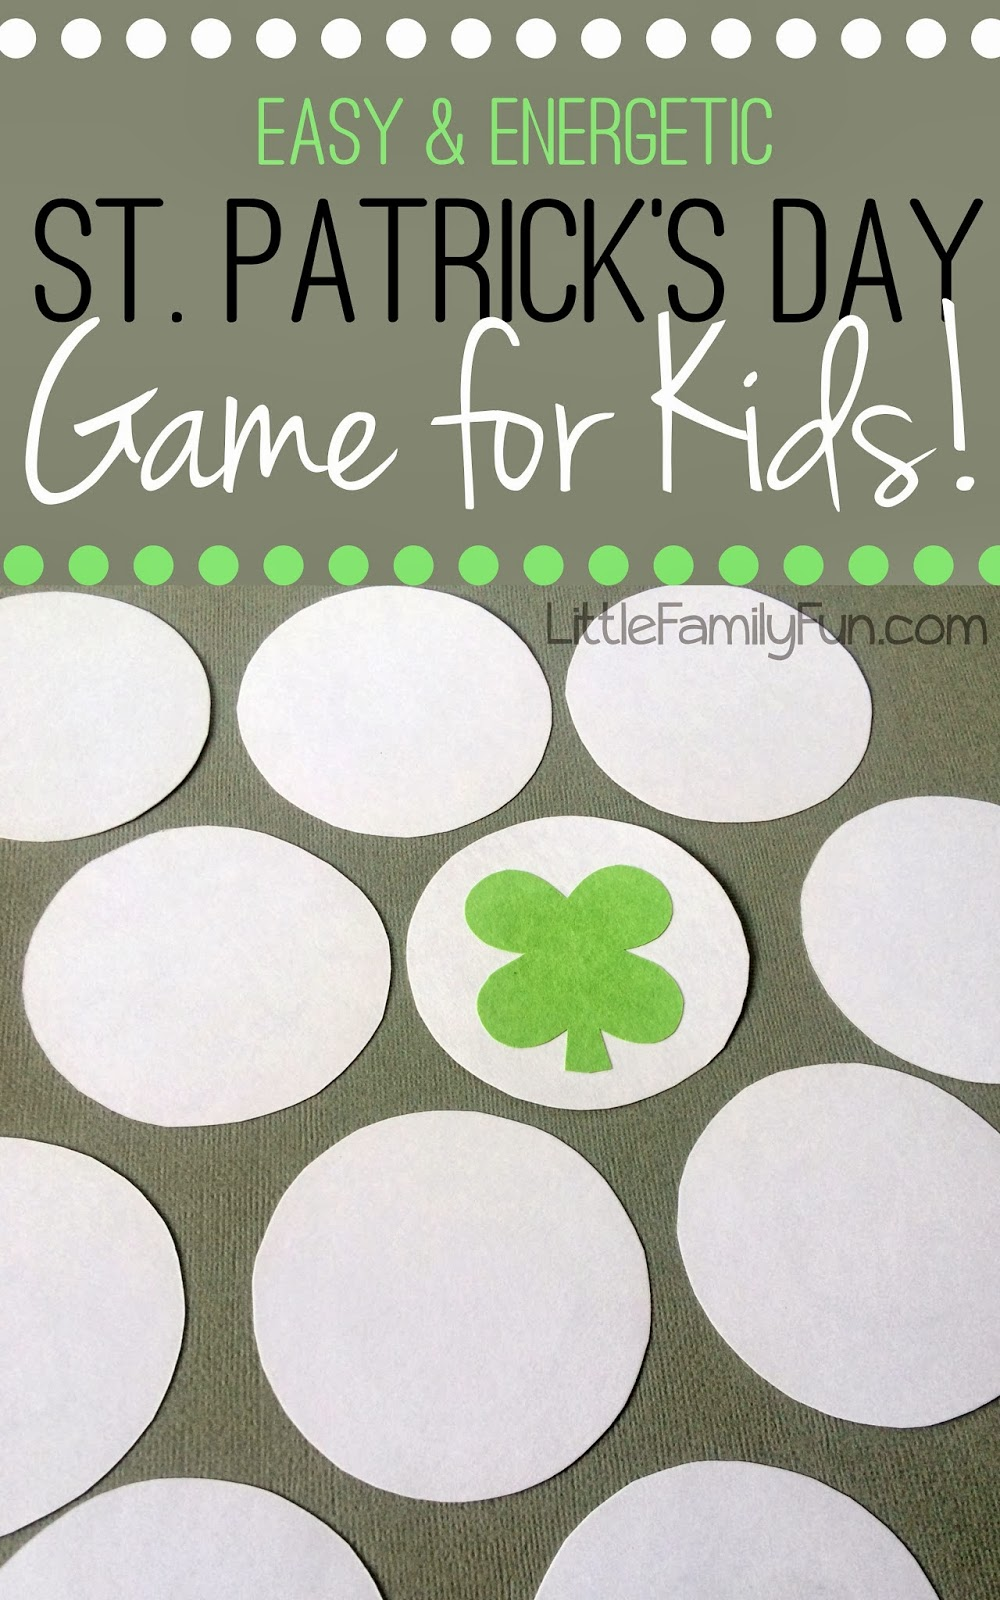 http://www.littlefamilyfun.com/2014/03/easy-energetic-st-patricks-day-game-for.html